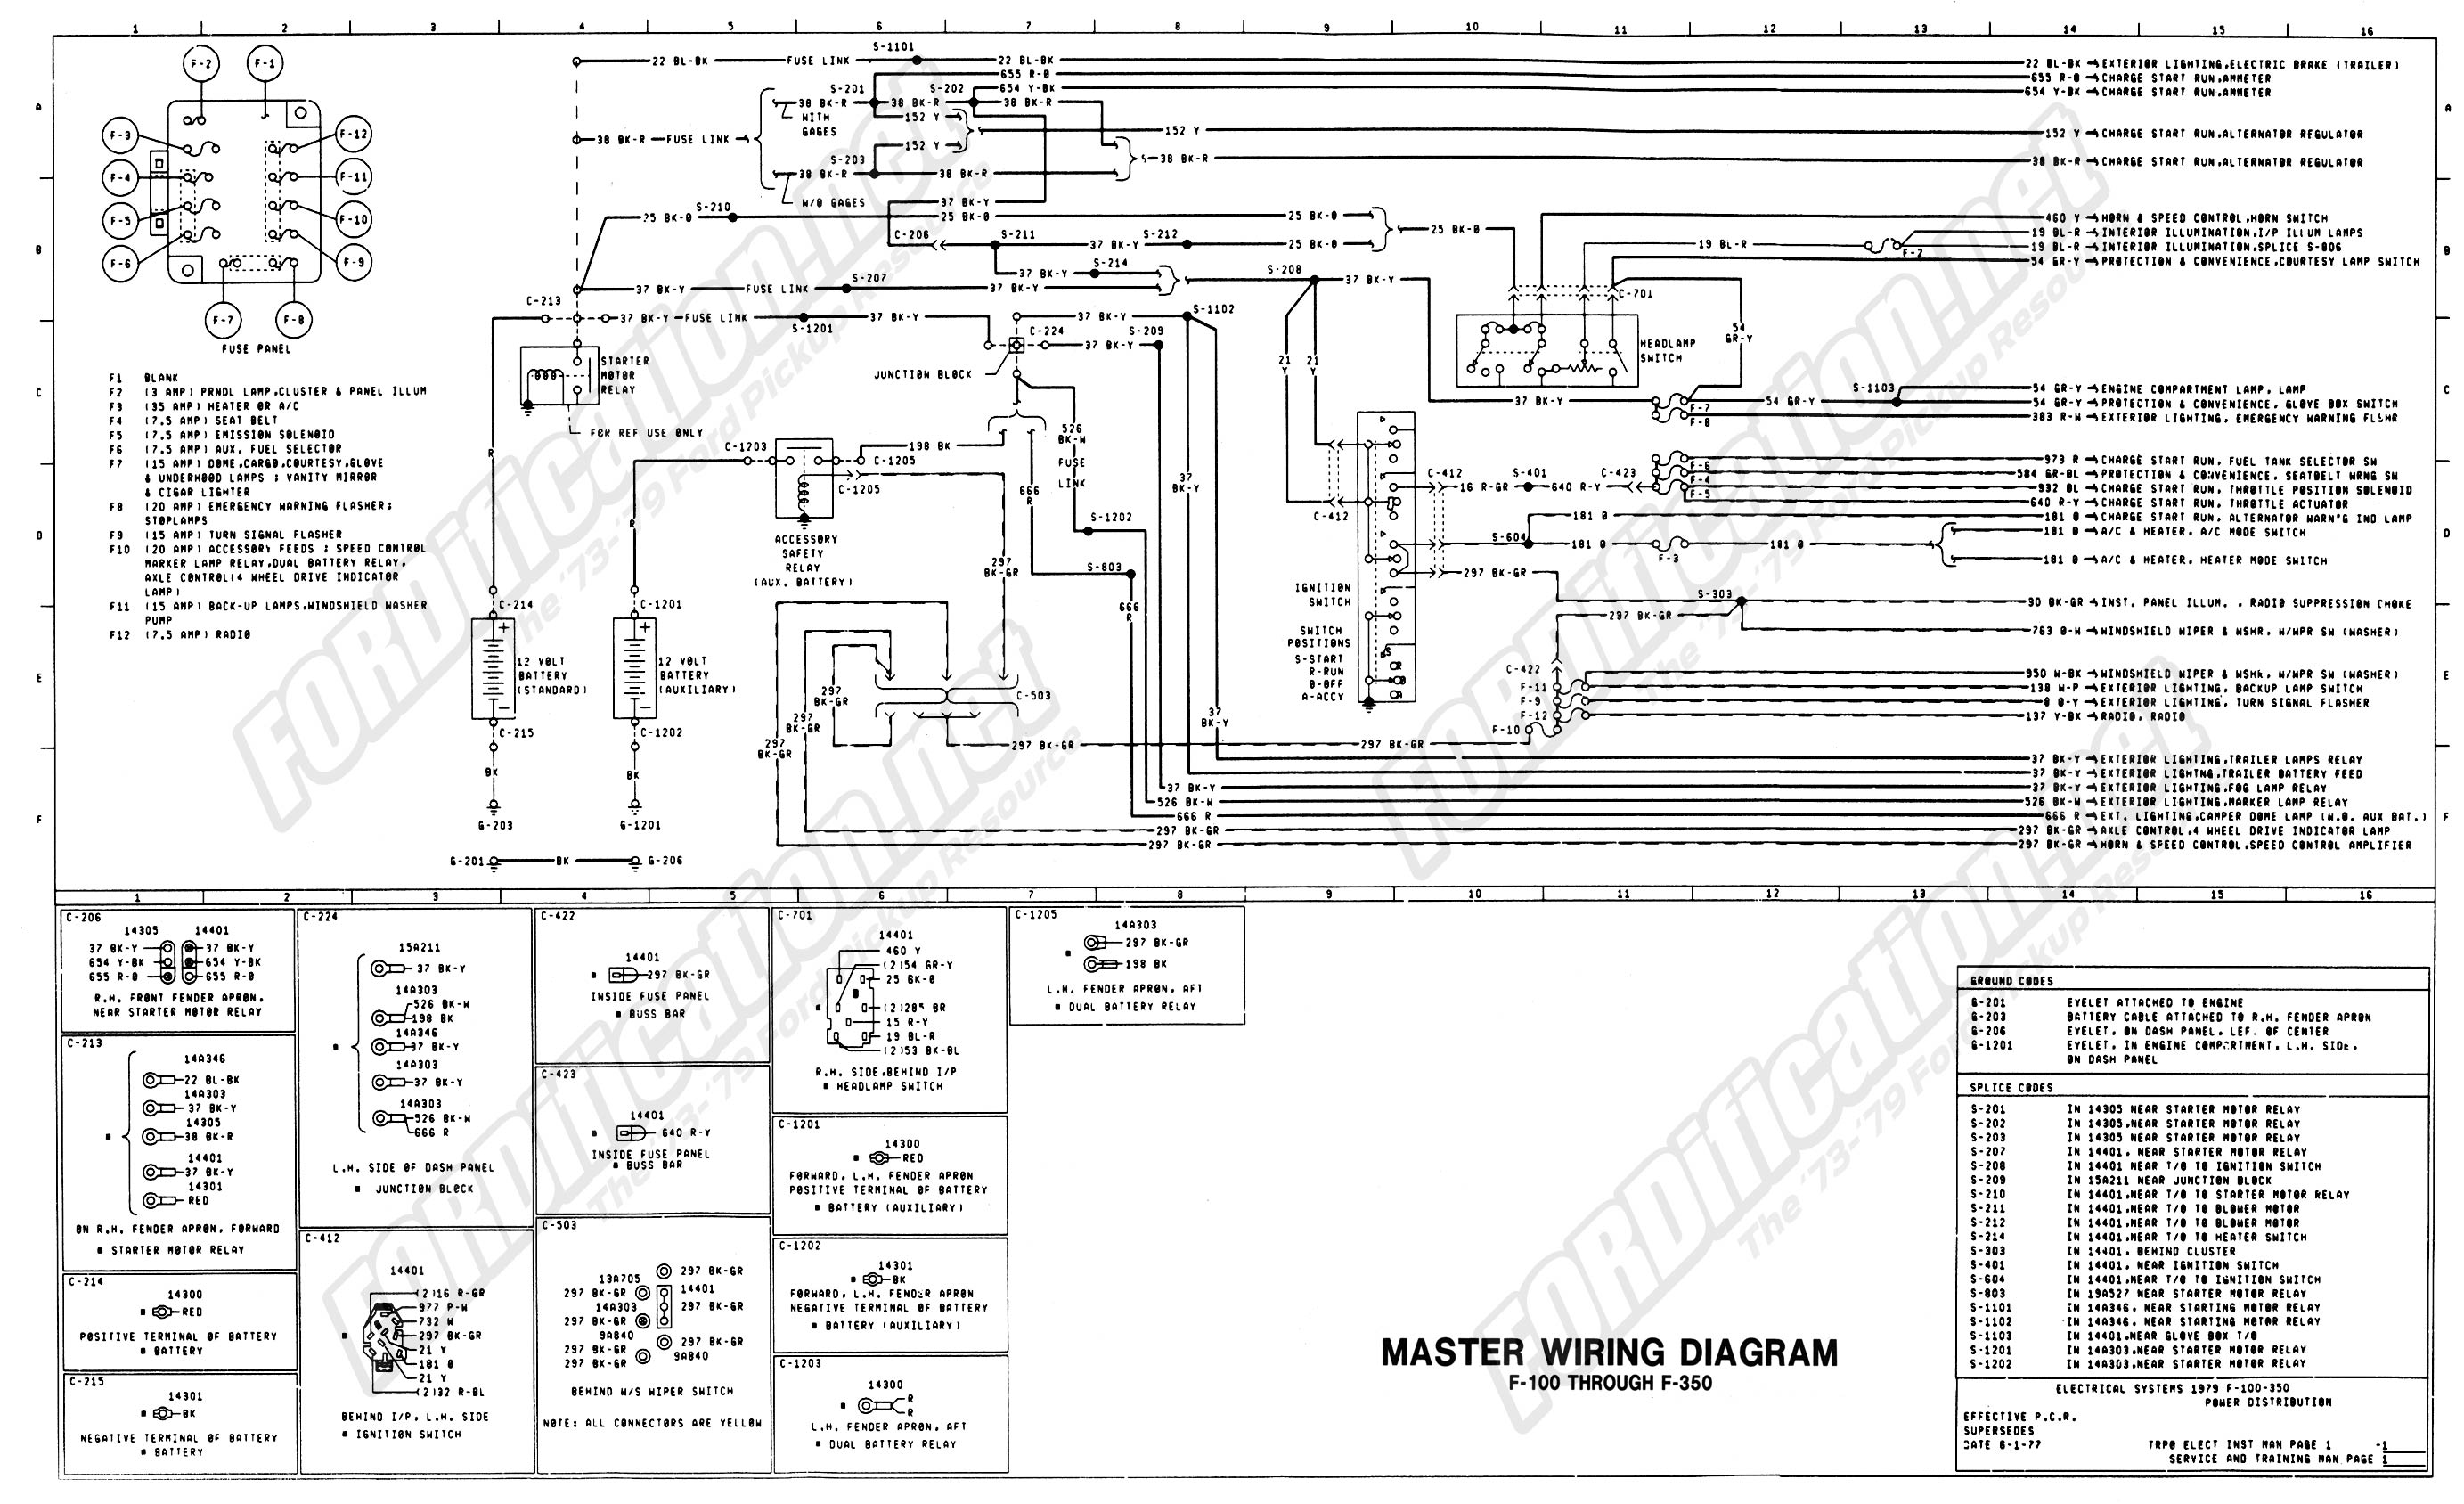 wiring_79master_1of9 1973 1979 ford truck wiring diagrams & schematics fordification net ford ignition switch diagram at bakdesigns.co